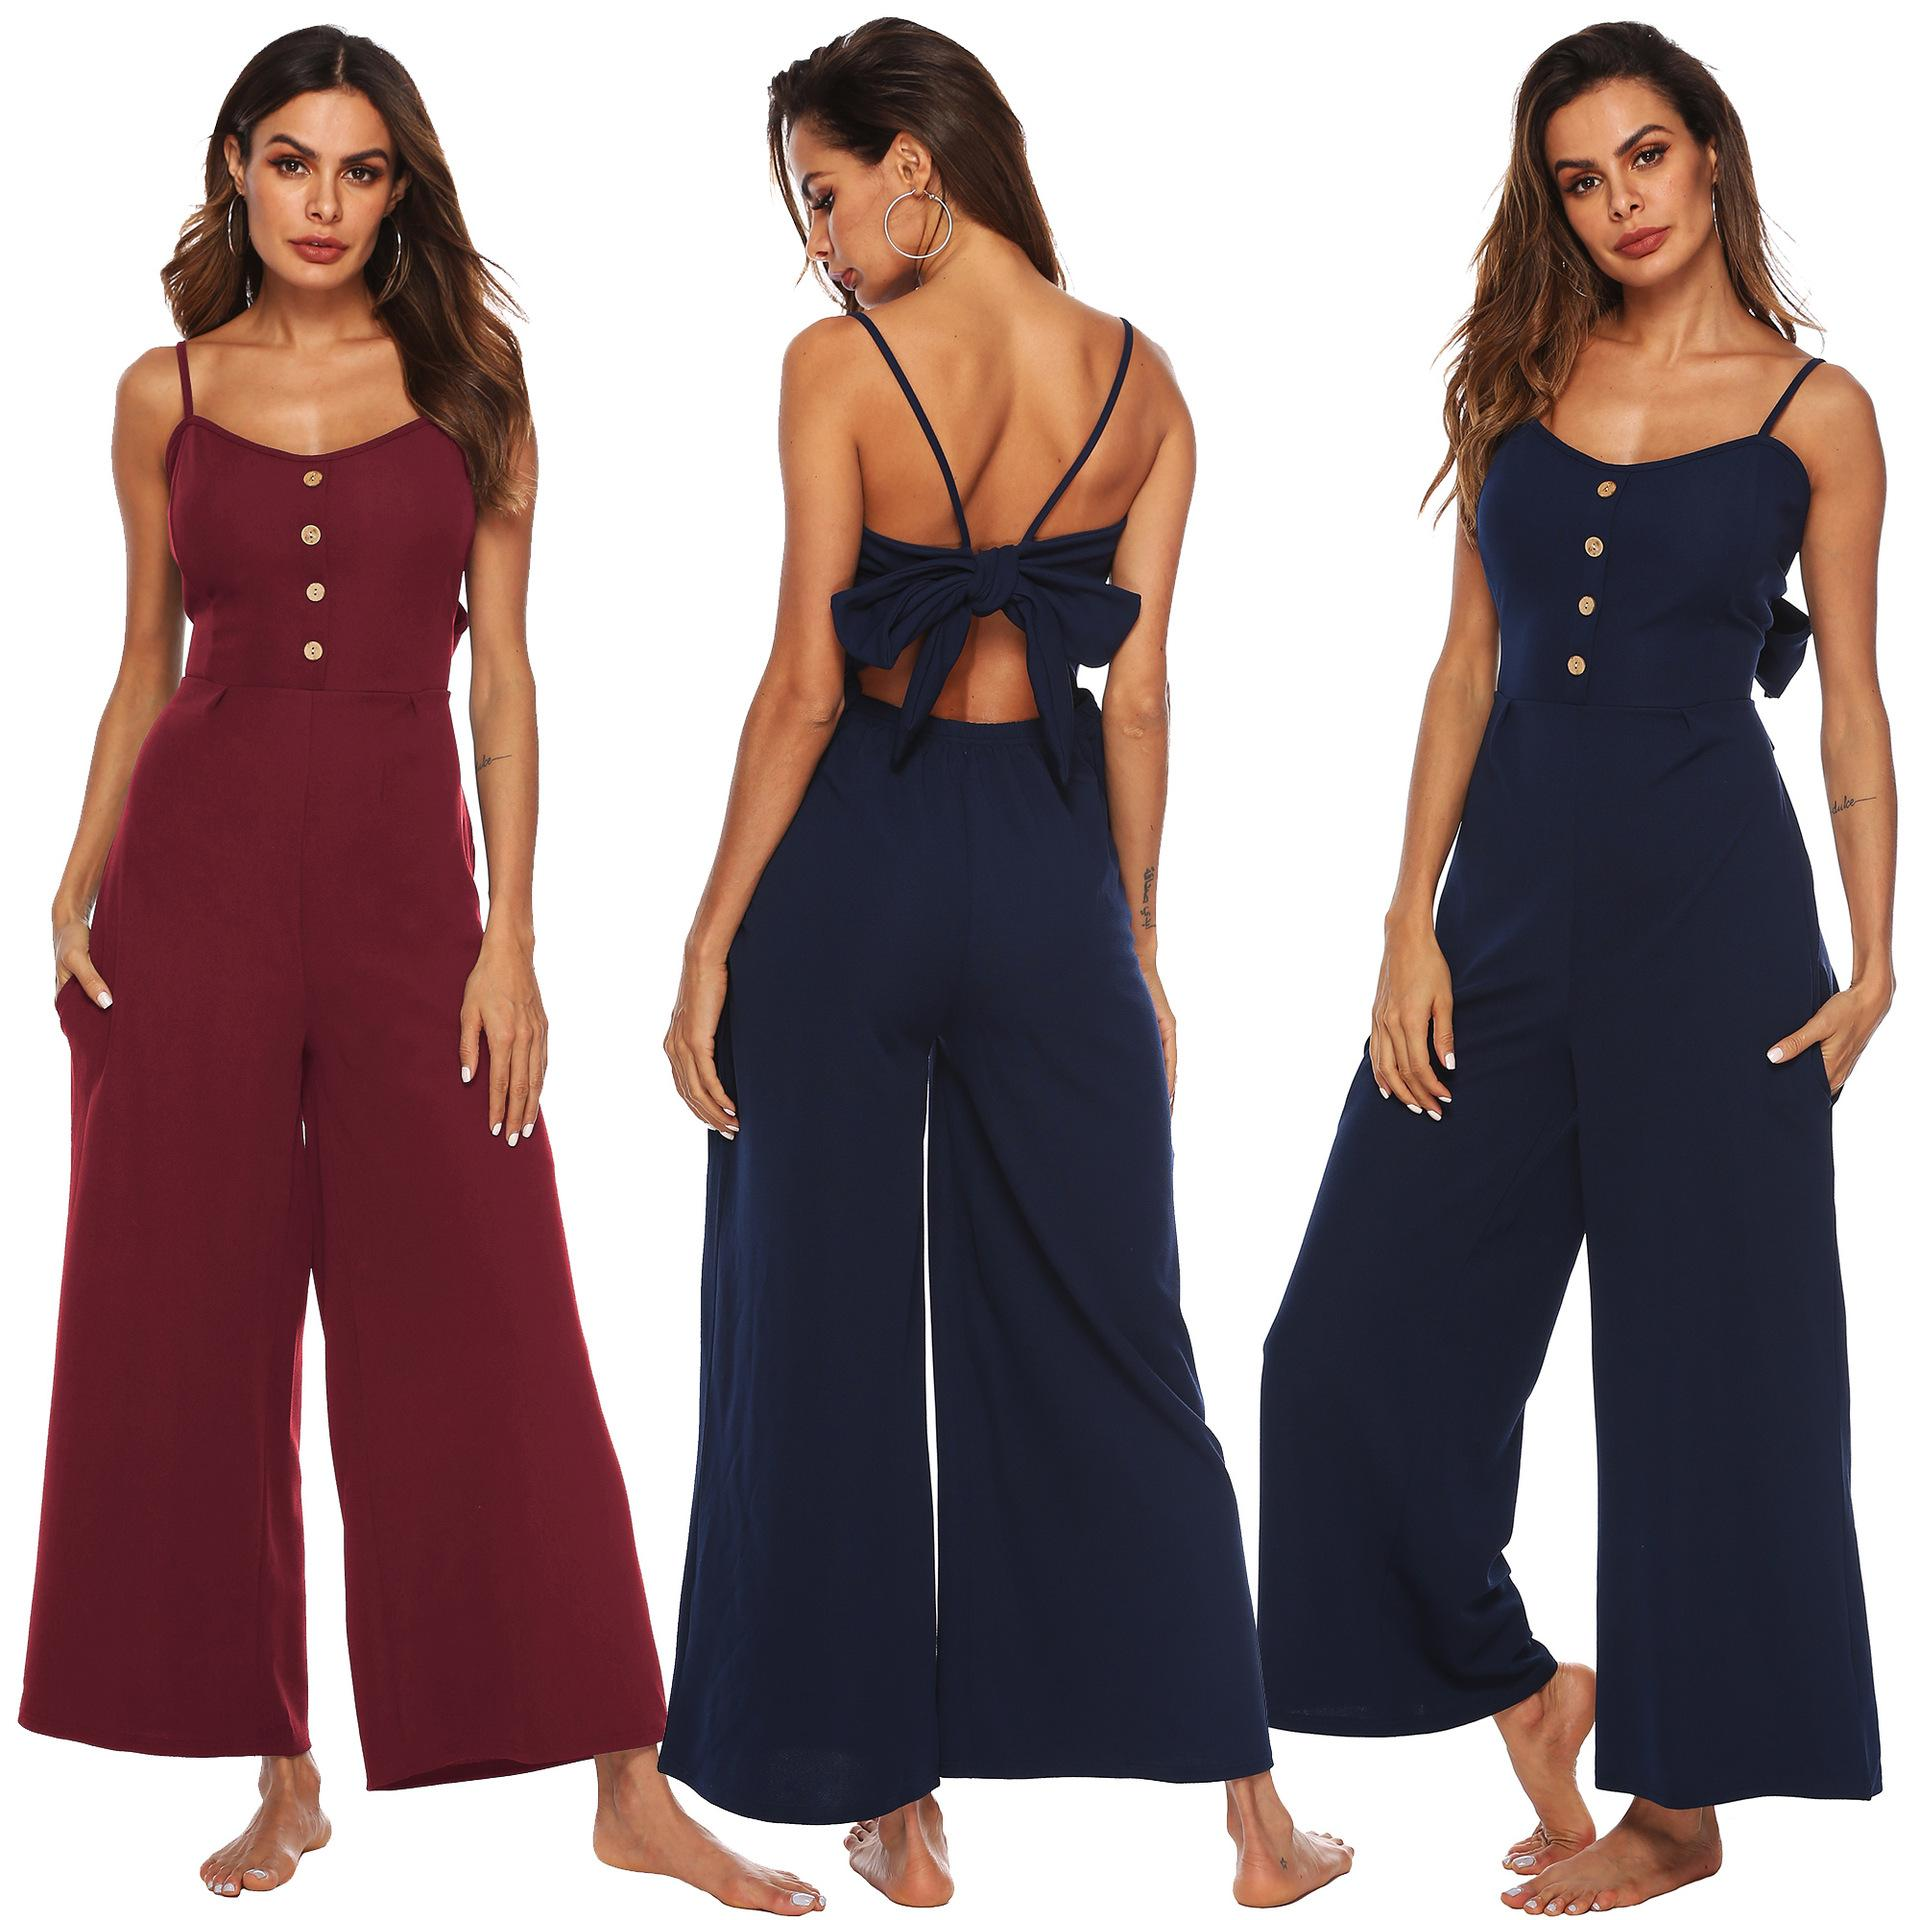 30982fb822d 2019 2019 Summer New Blue Bodycon Backless Jumpsuits Women Sexy Party  Clubwear Jumpsuits Casual Bowtie Overalls Jumpsuit Plus Size From  Donnatang240965